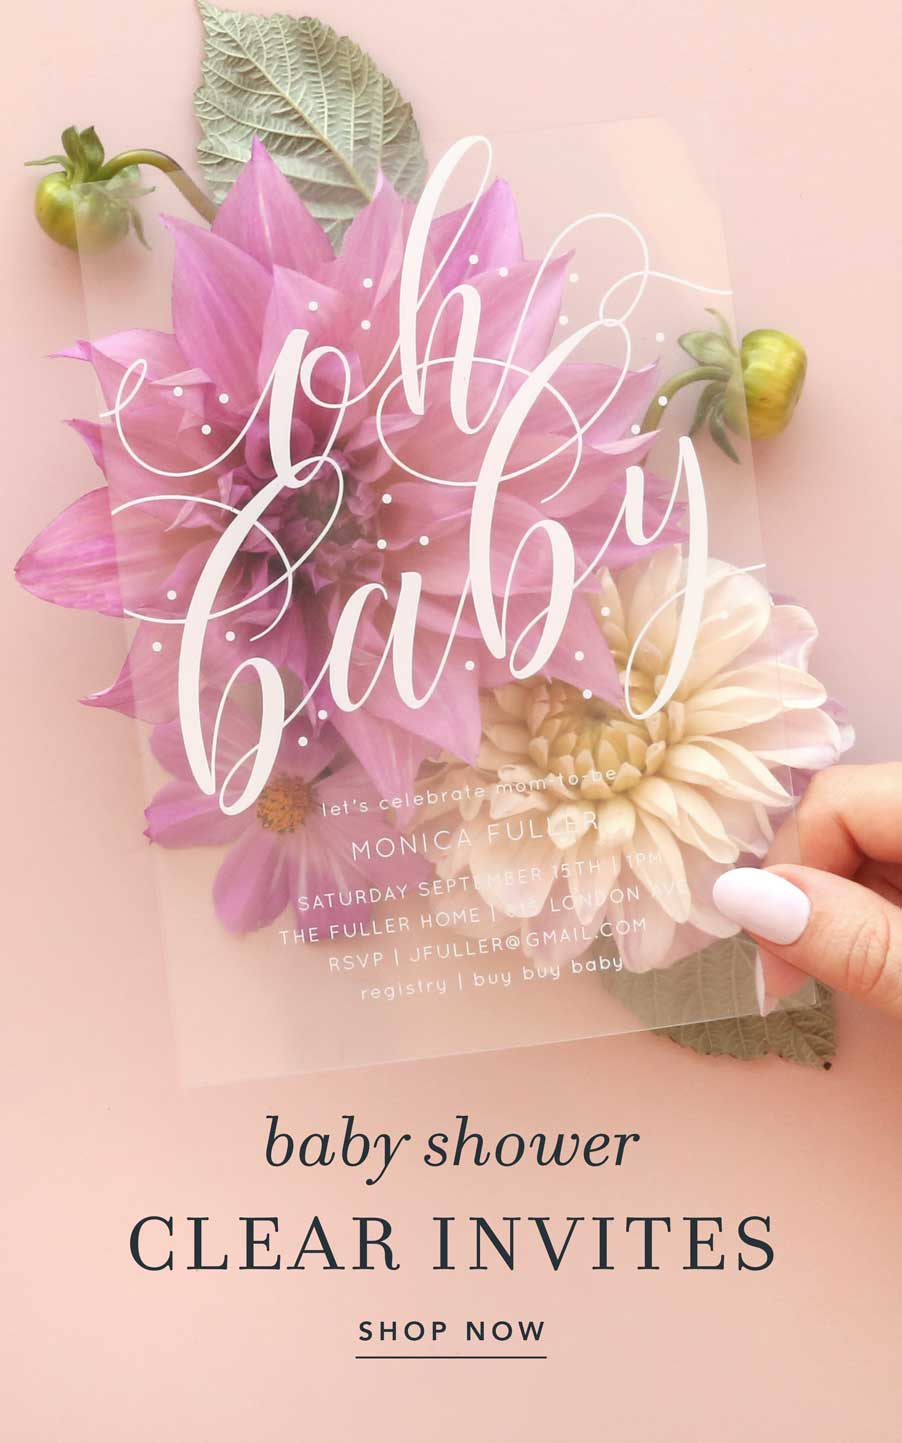 Shop our clear baby shower invitaitons!